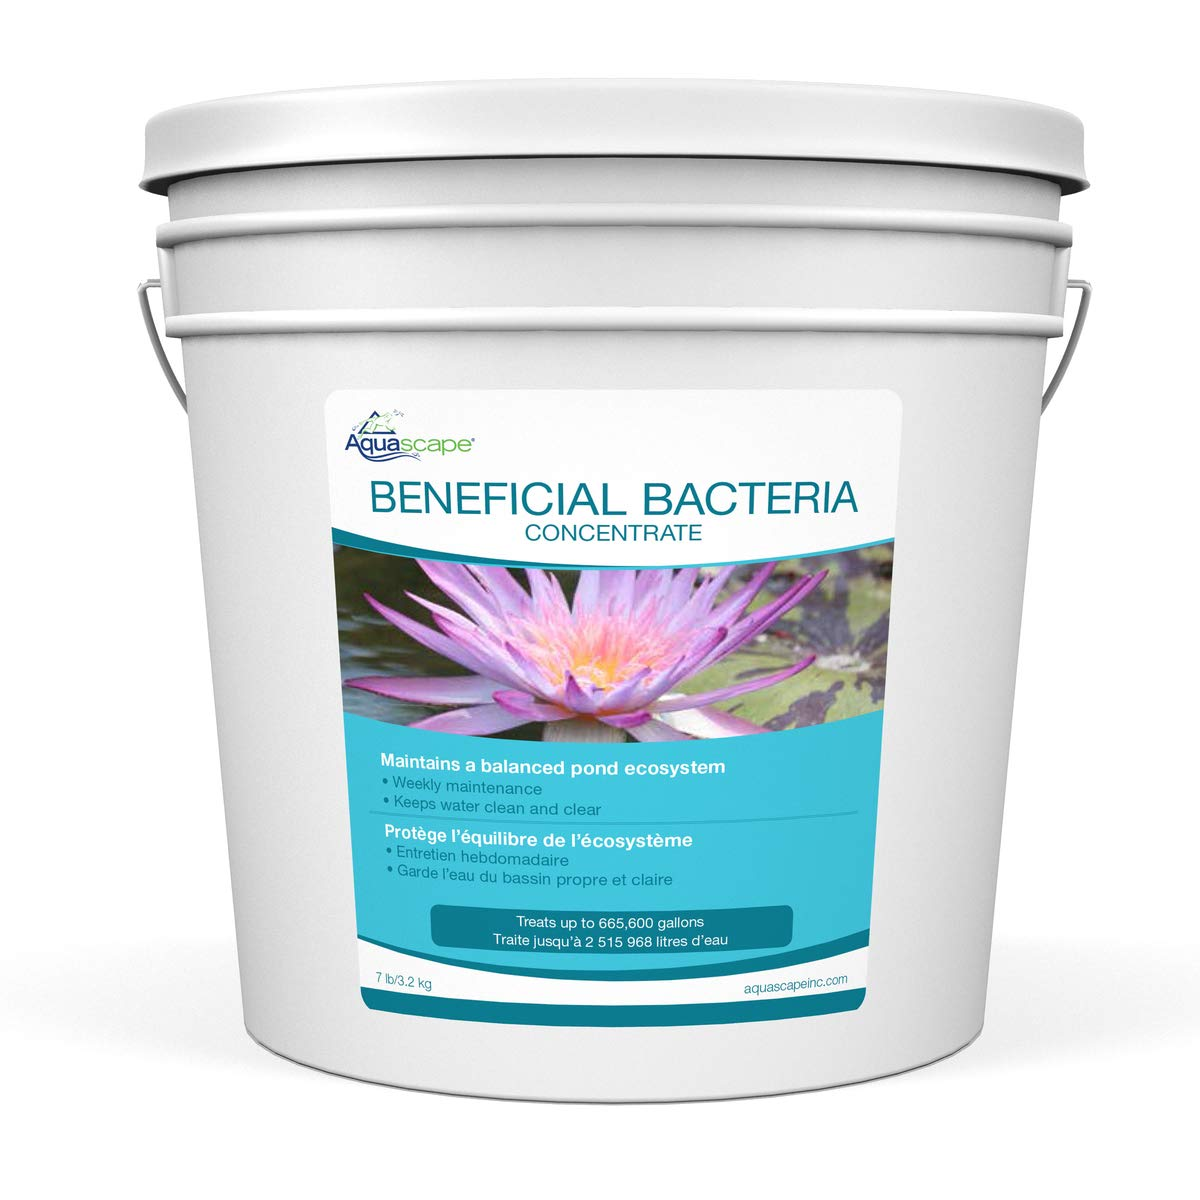 Aquascape Dry Beneficial Bacteria for Pond and Water Features, 7-Pound   98950